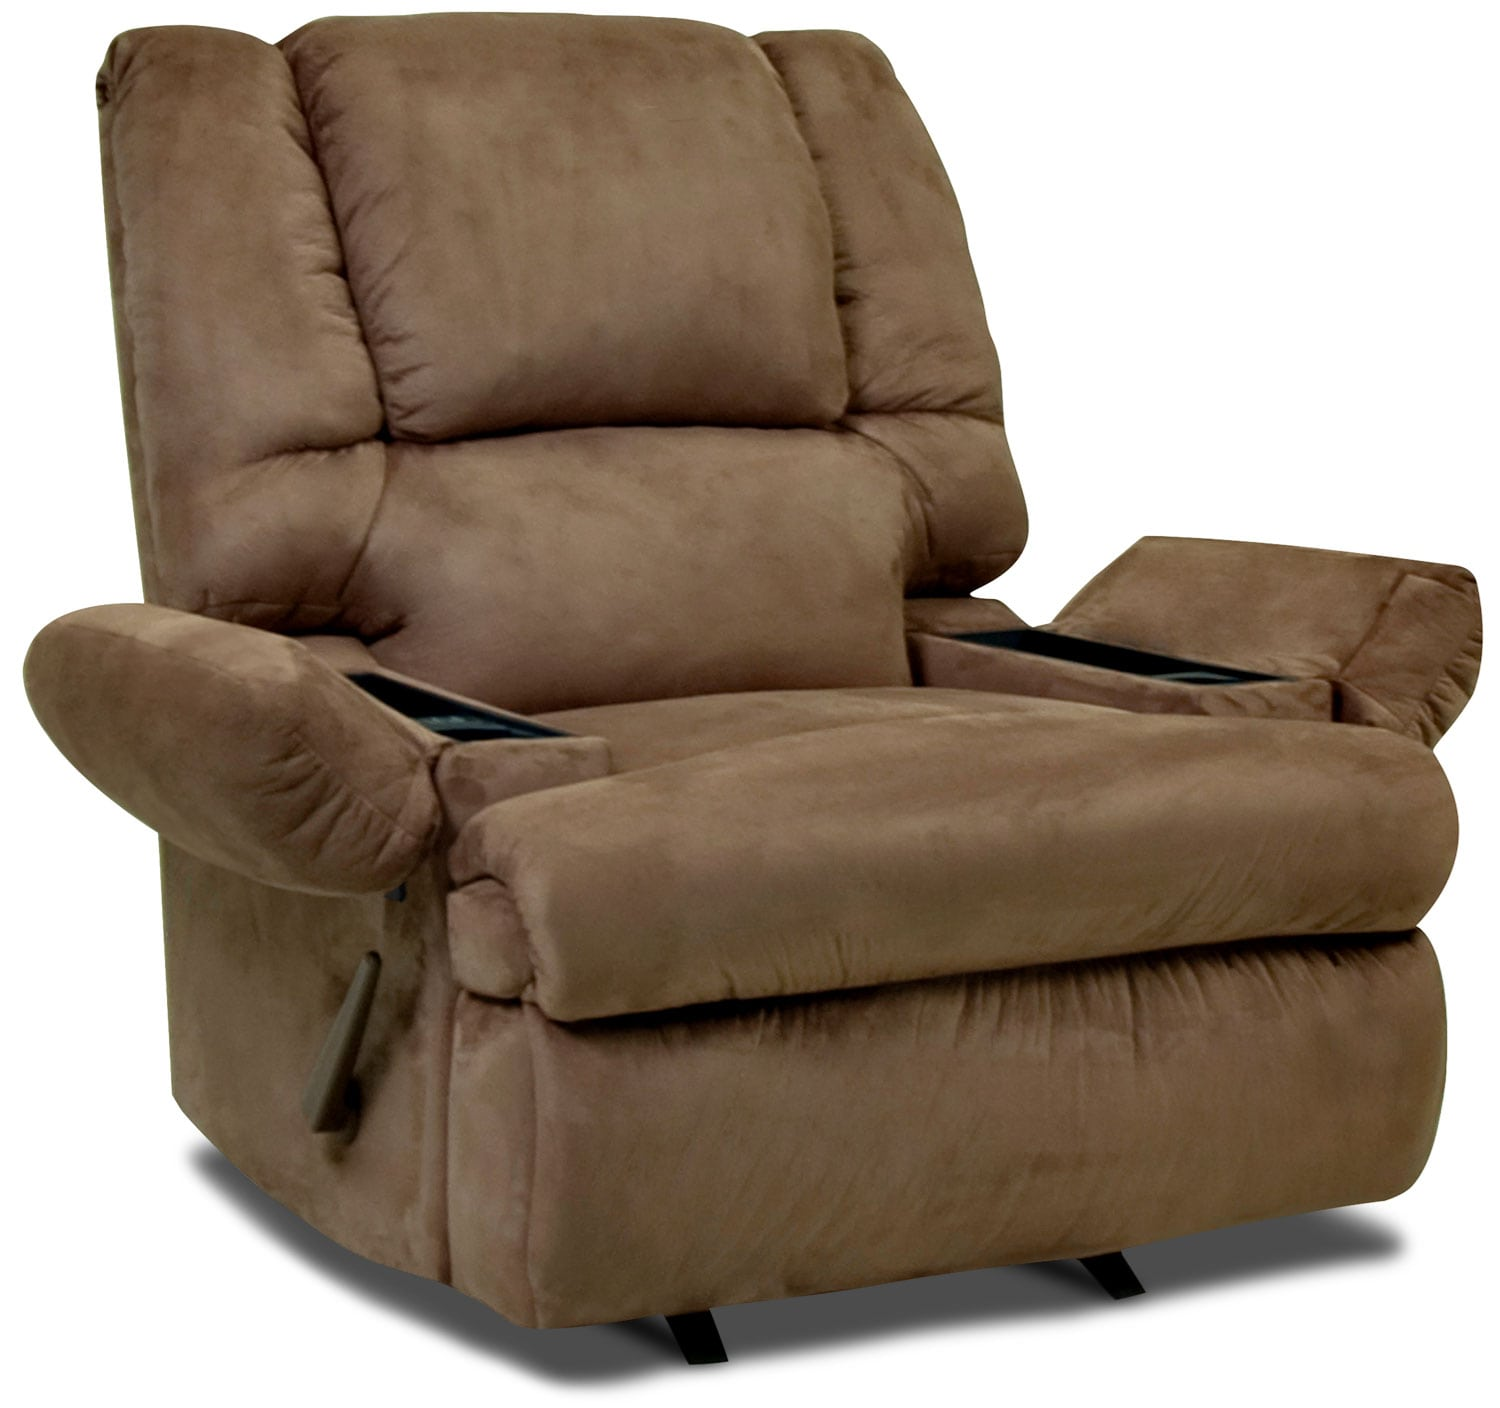 designed2b recliner padded suede massage recliner with storage arms mocha